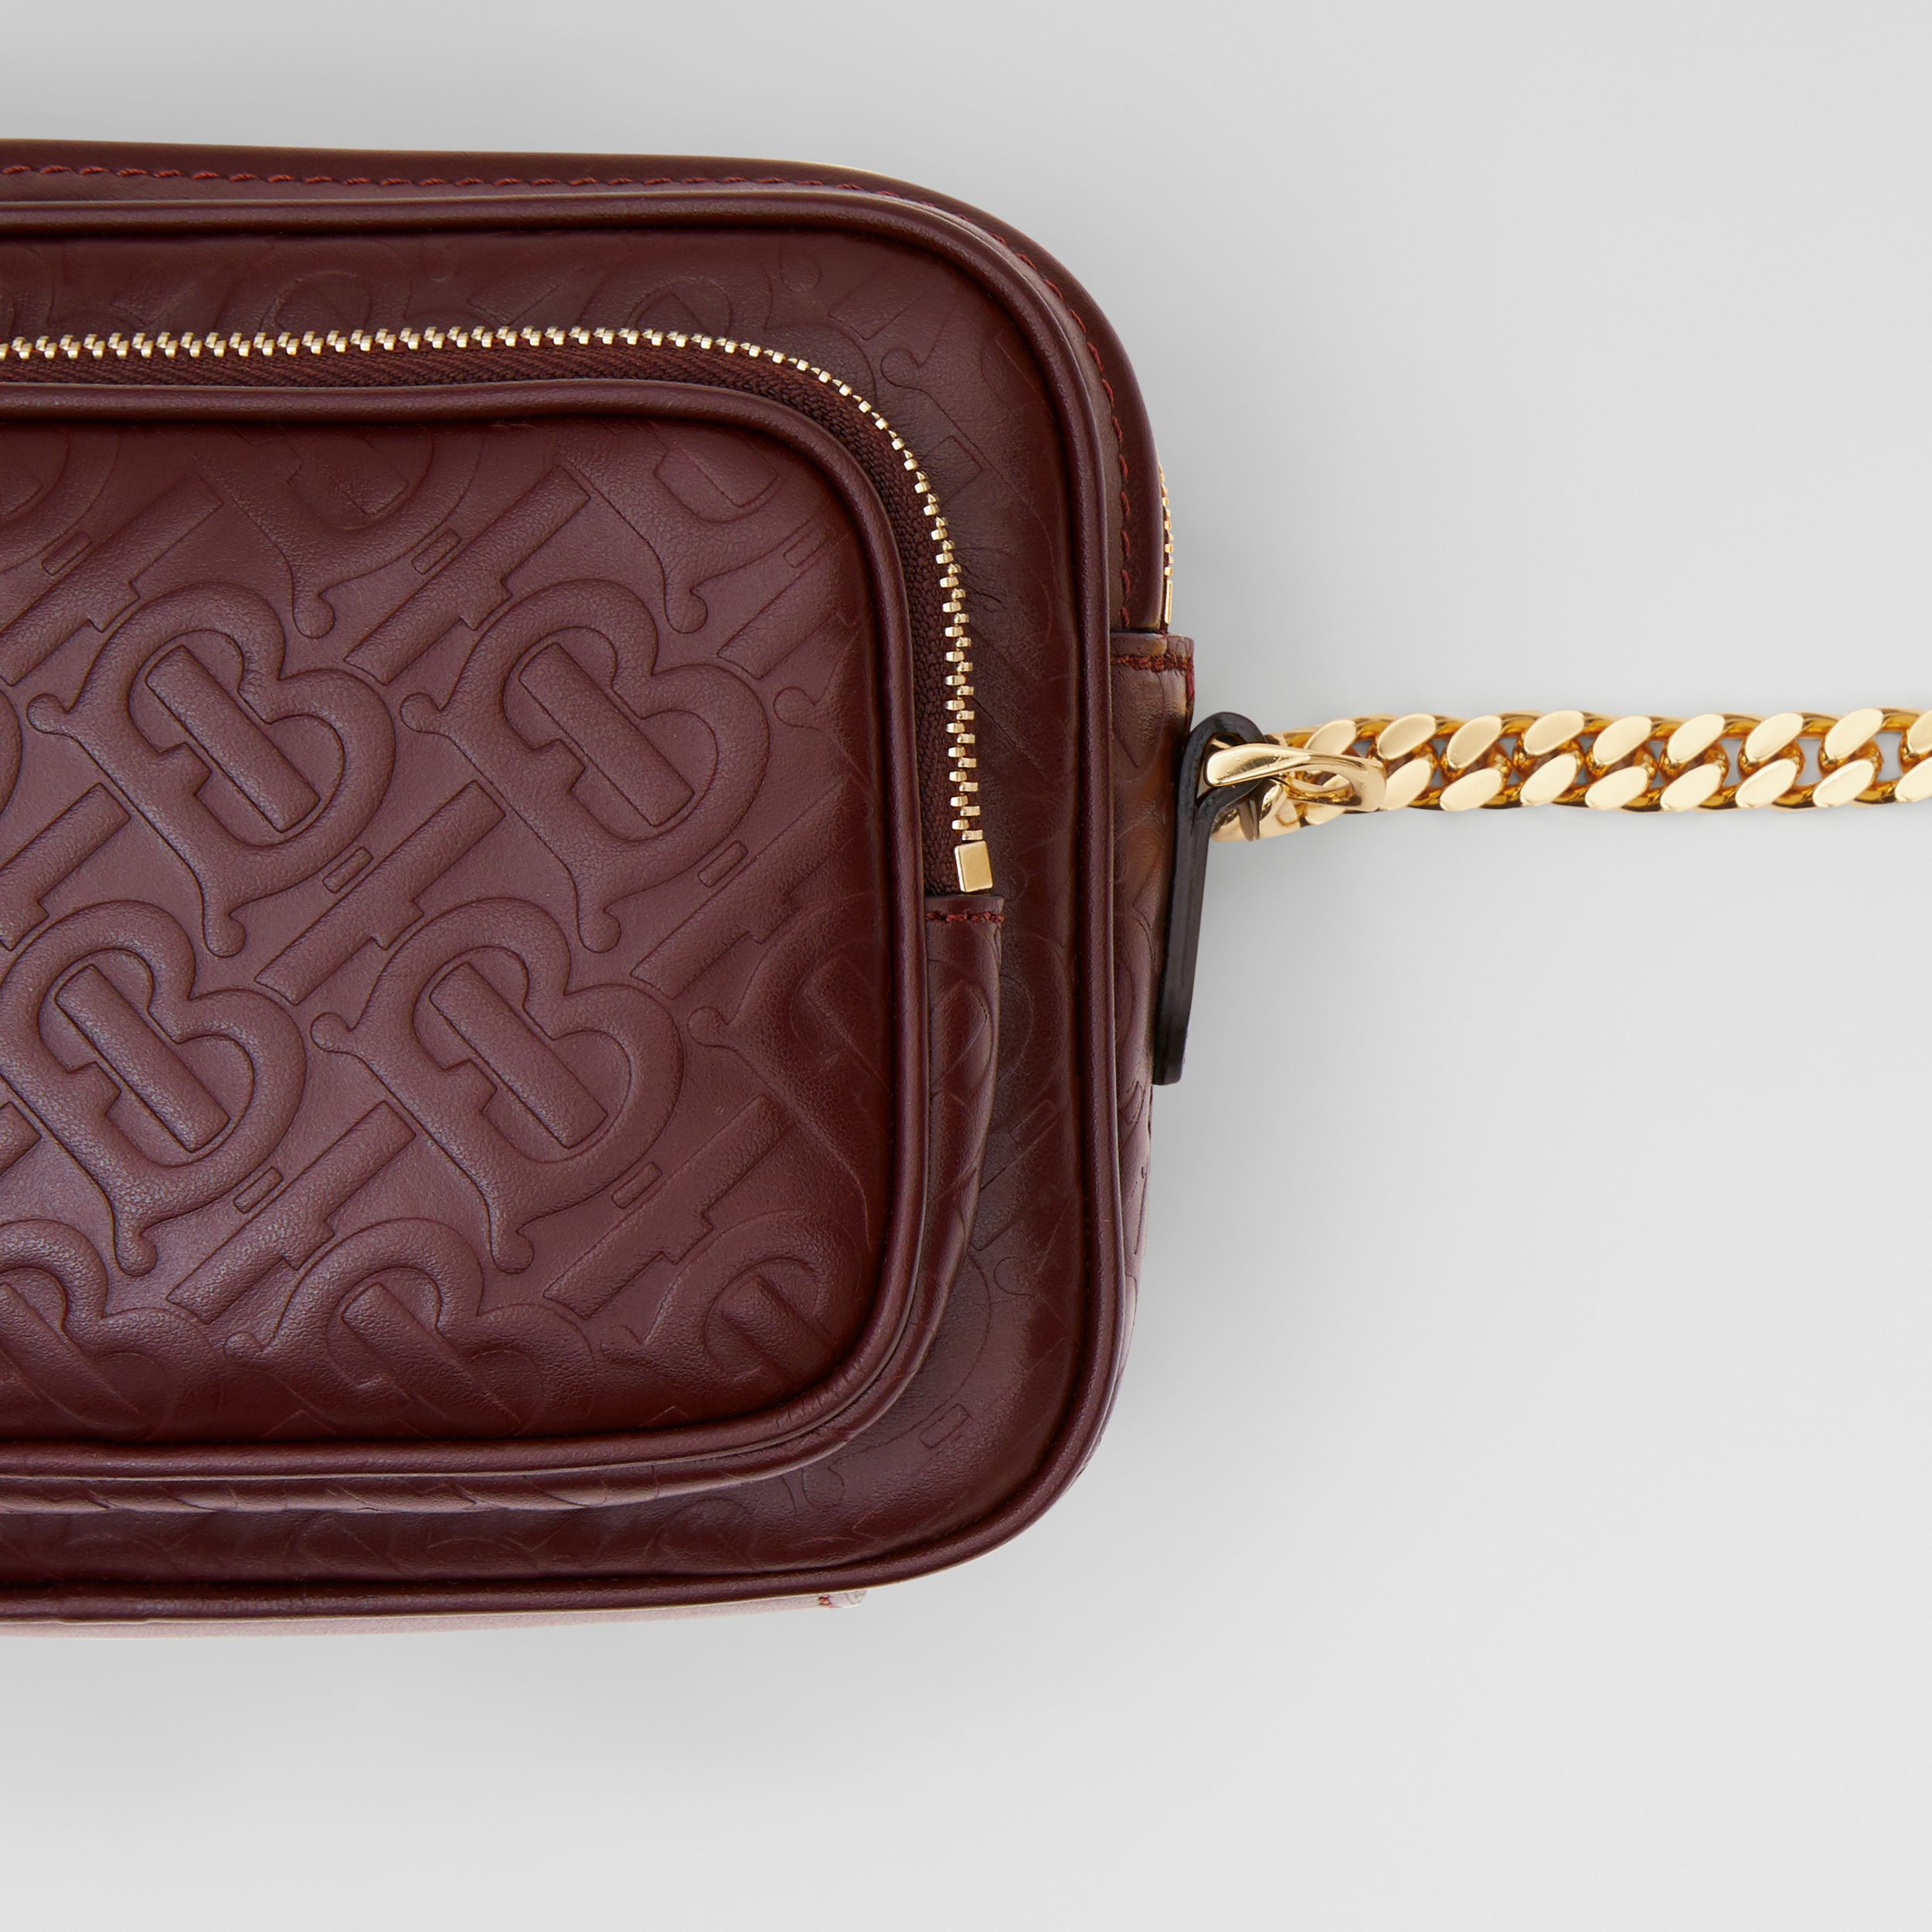 Monogram Leather Camera Bag in Dark Burgundy - Women | Burberry - 2